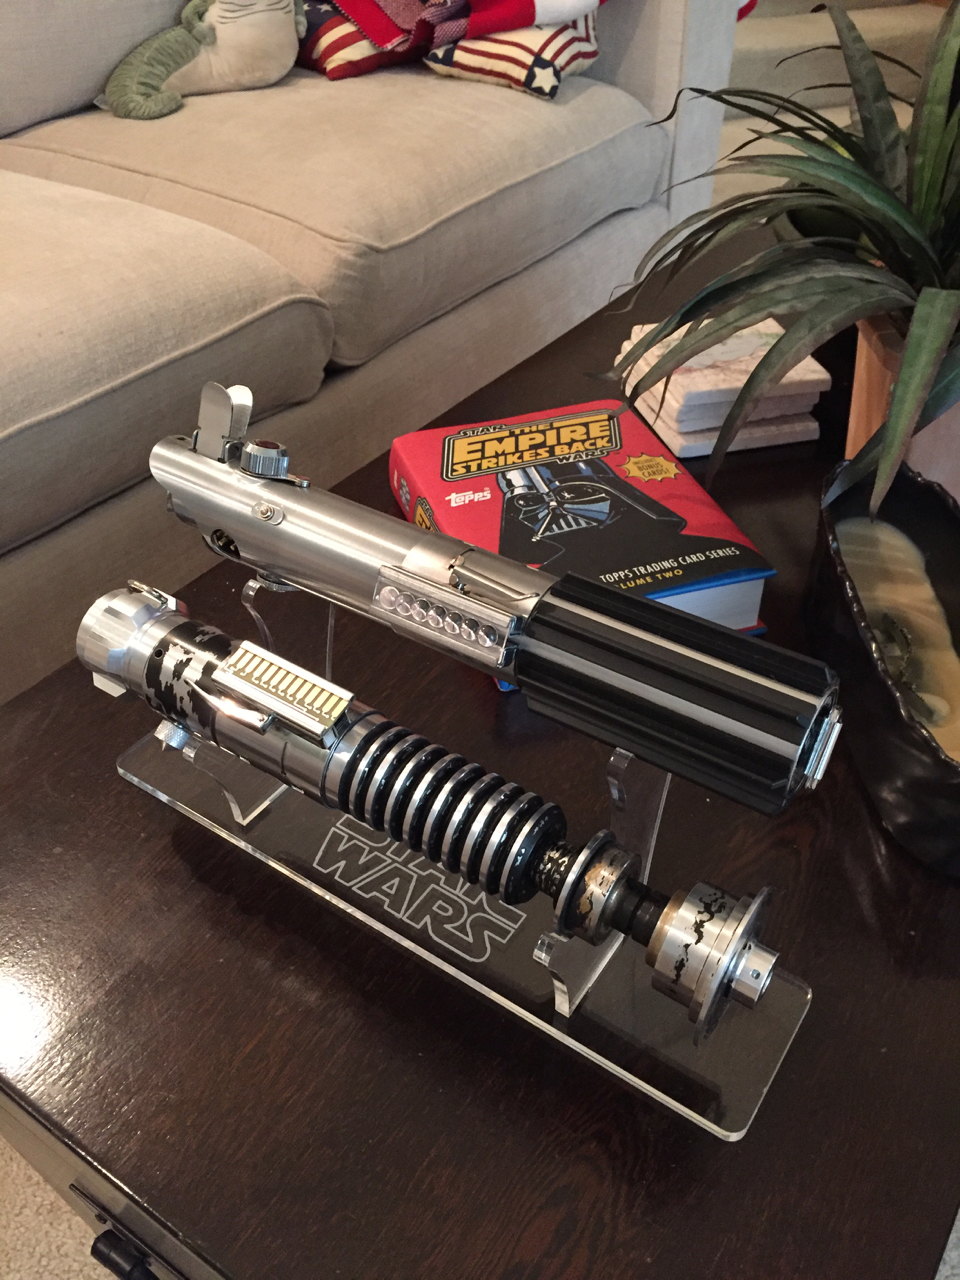 Anakin Starkiller Unibody V2 from 2017, alongside a Romans ANH Graflex.